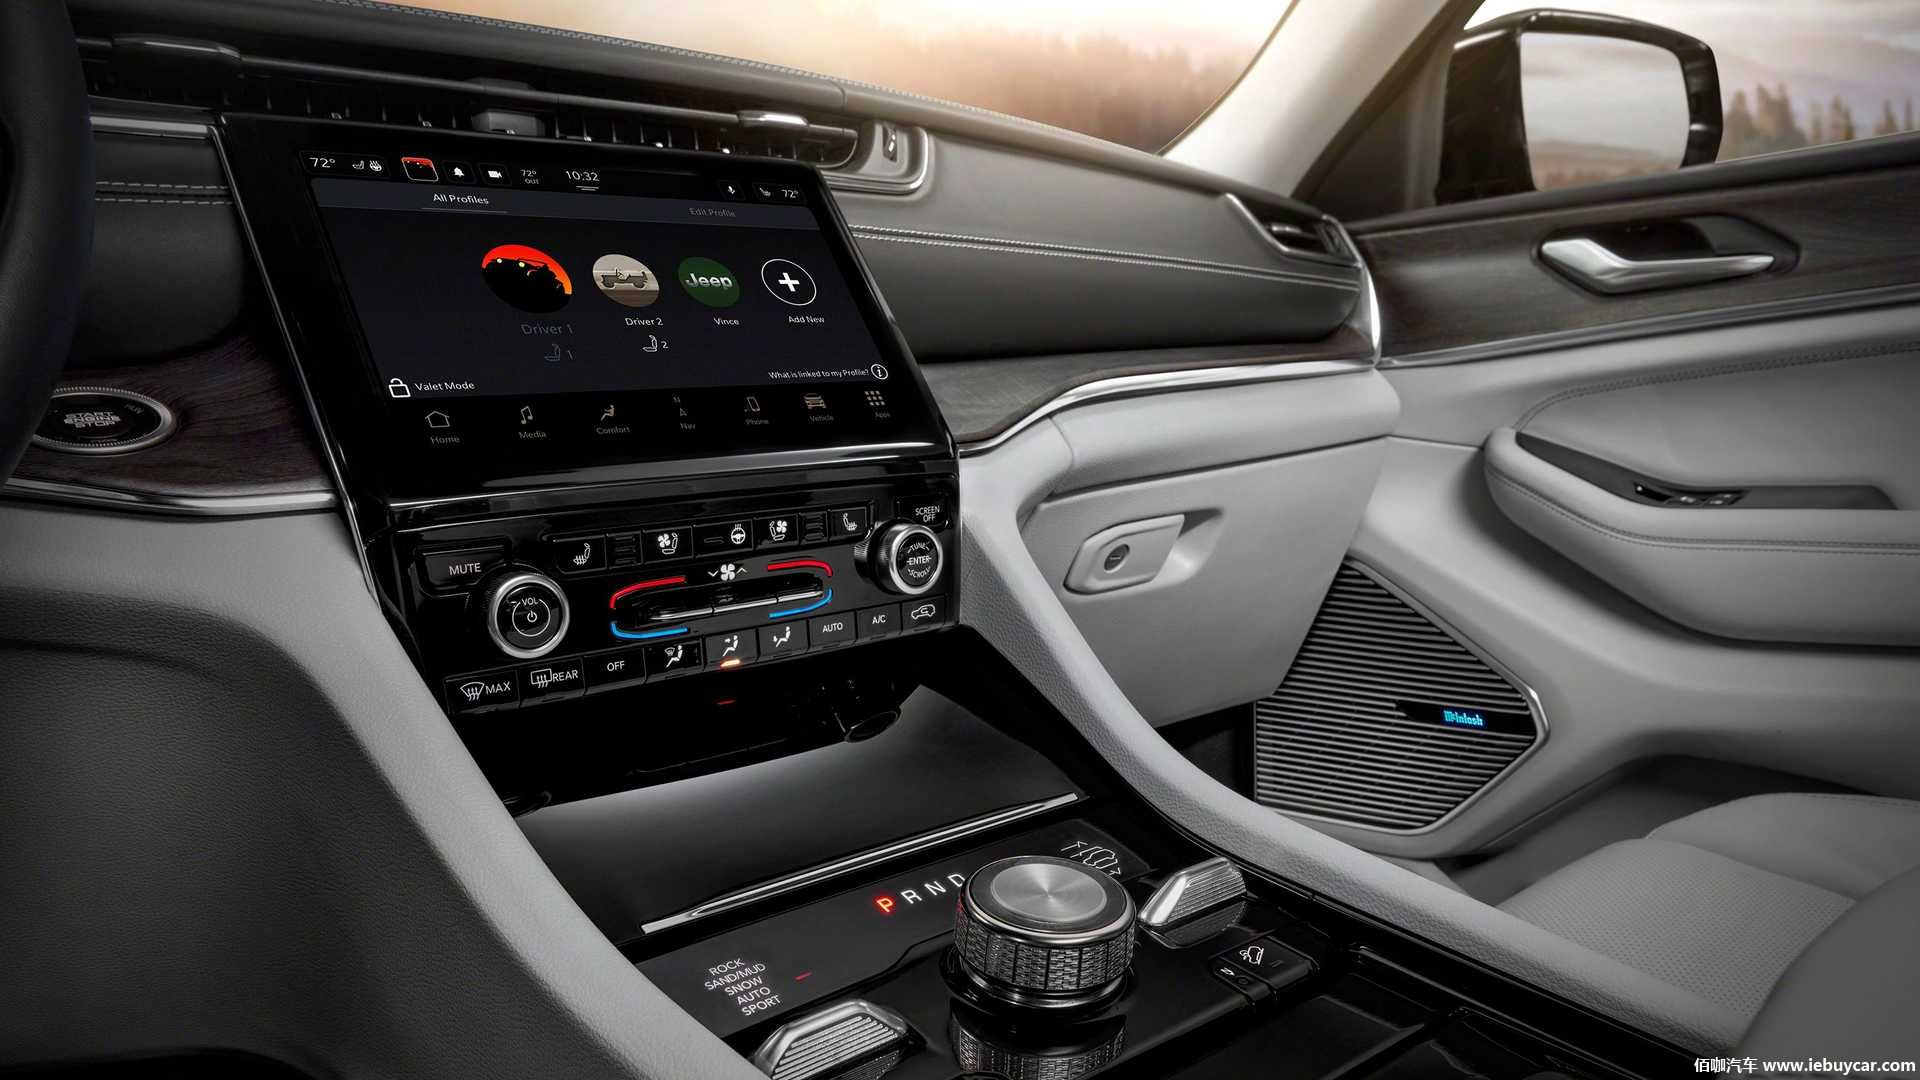 2021-jeep-grand-cherokee-l-interior (2).jpg